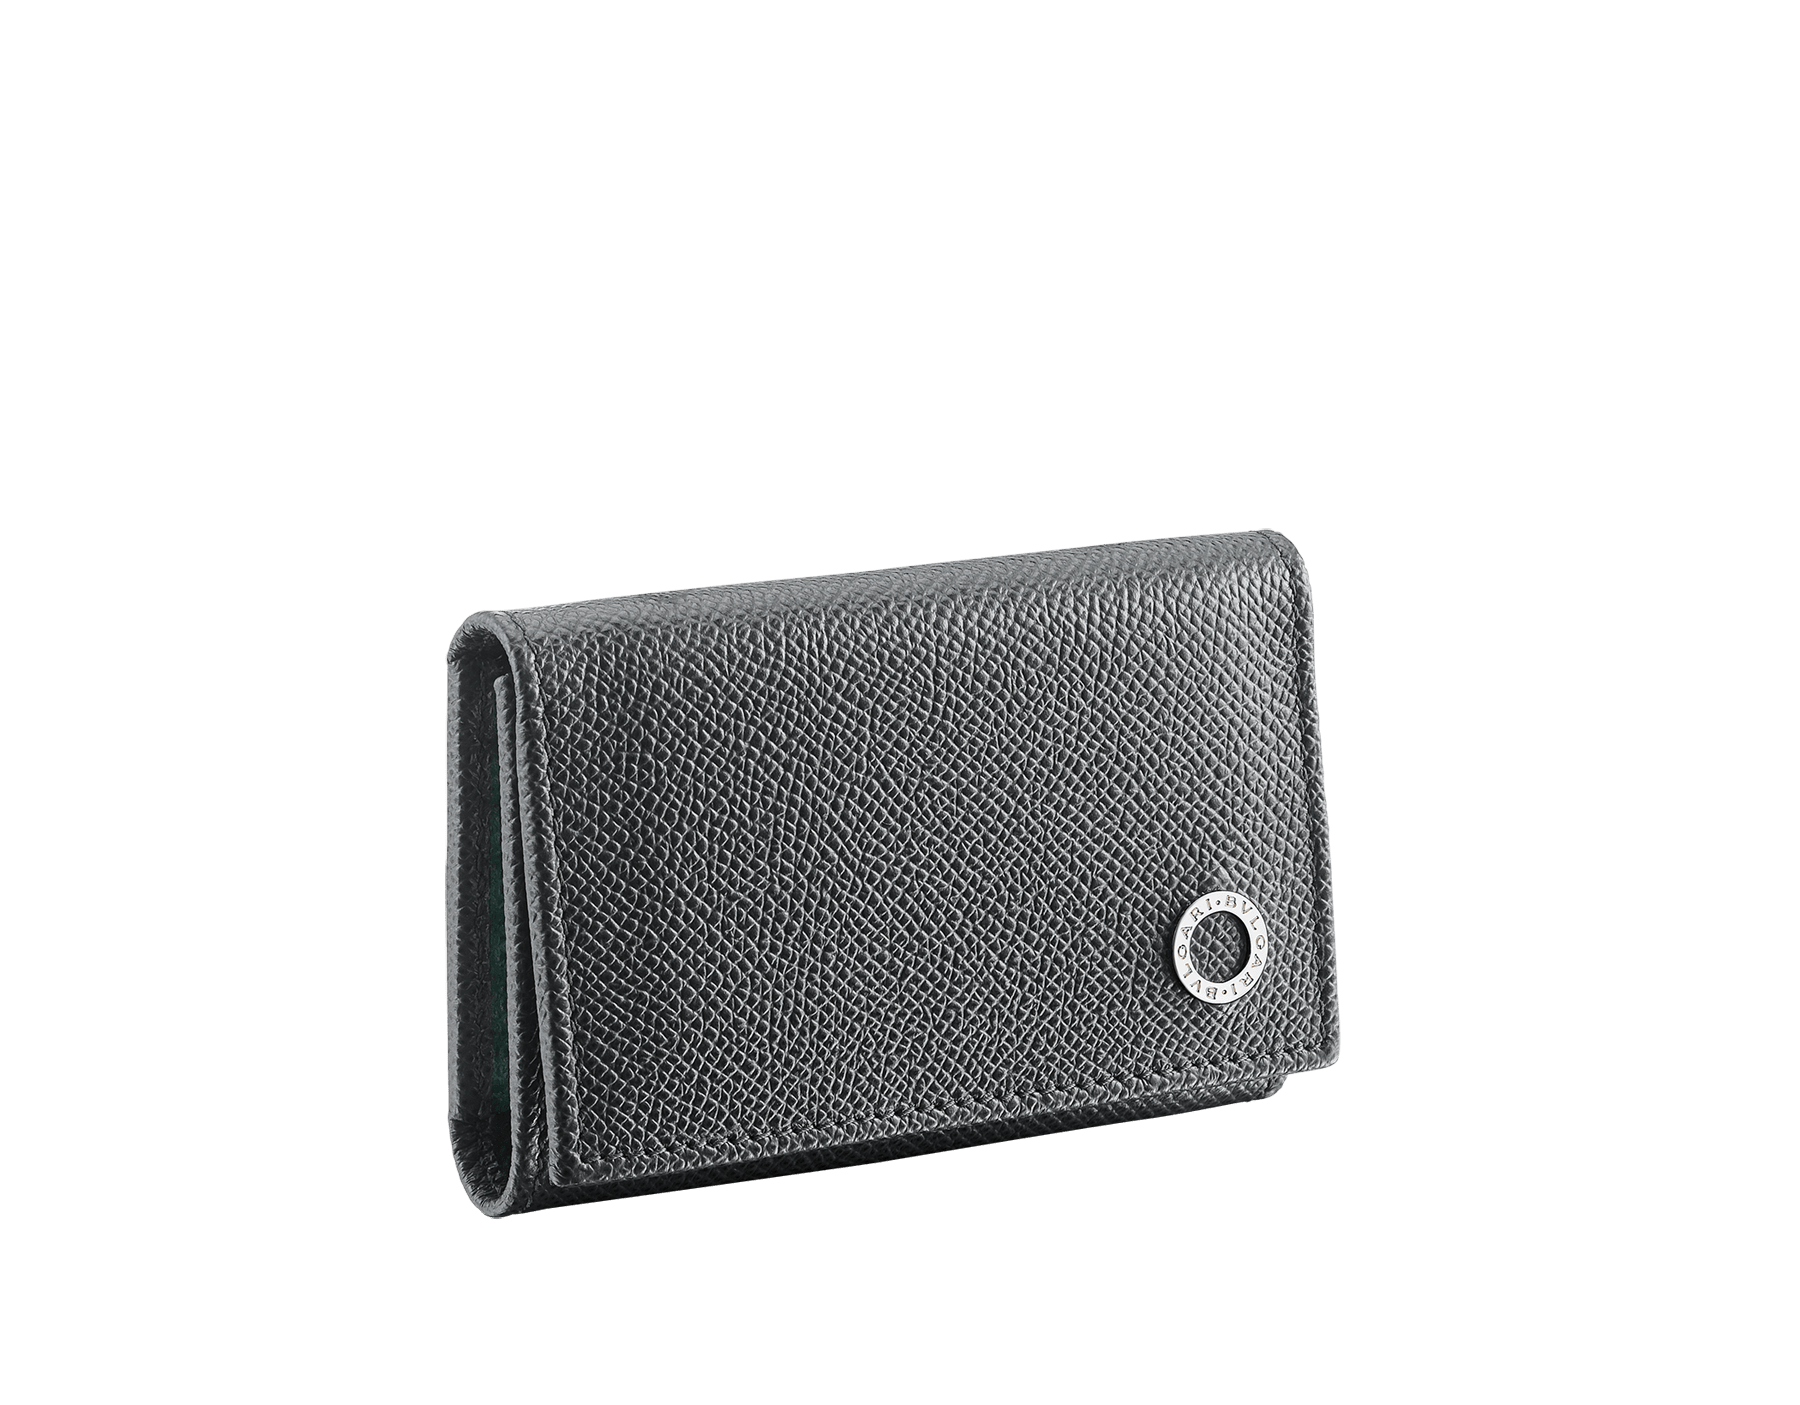 BVLGARI BVLGARI double keyholder in charcoal diamond and emerald green grain calf leather. Detachable car keyholder in palladium plated brass. 289132 image 1